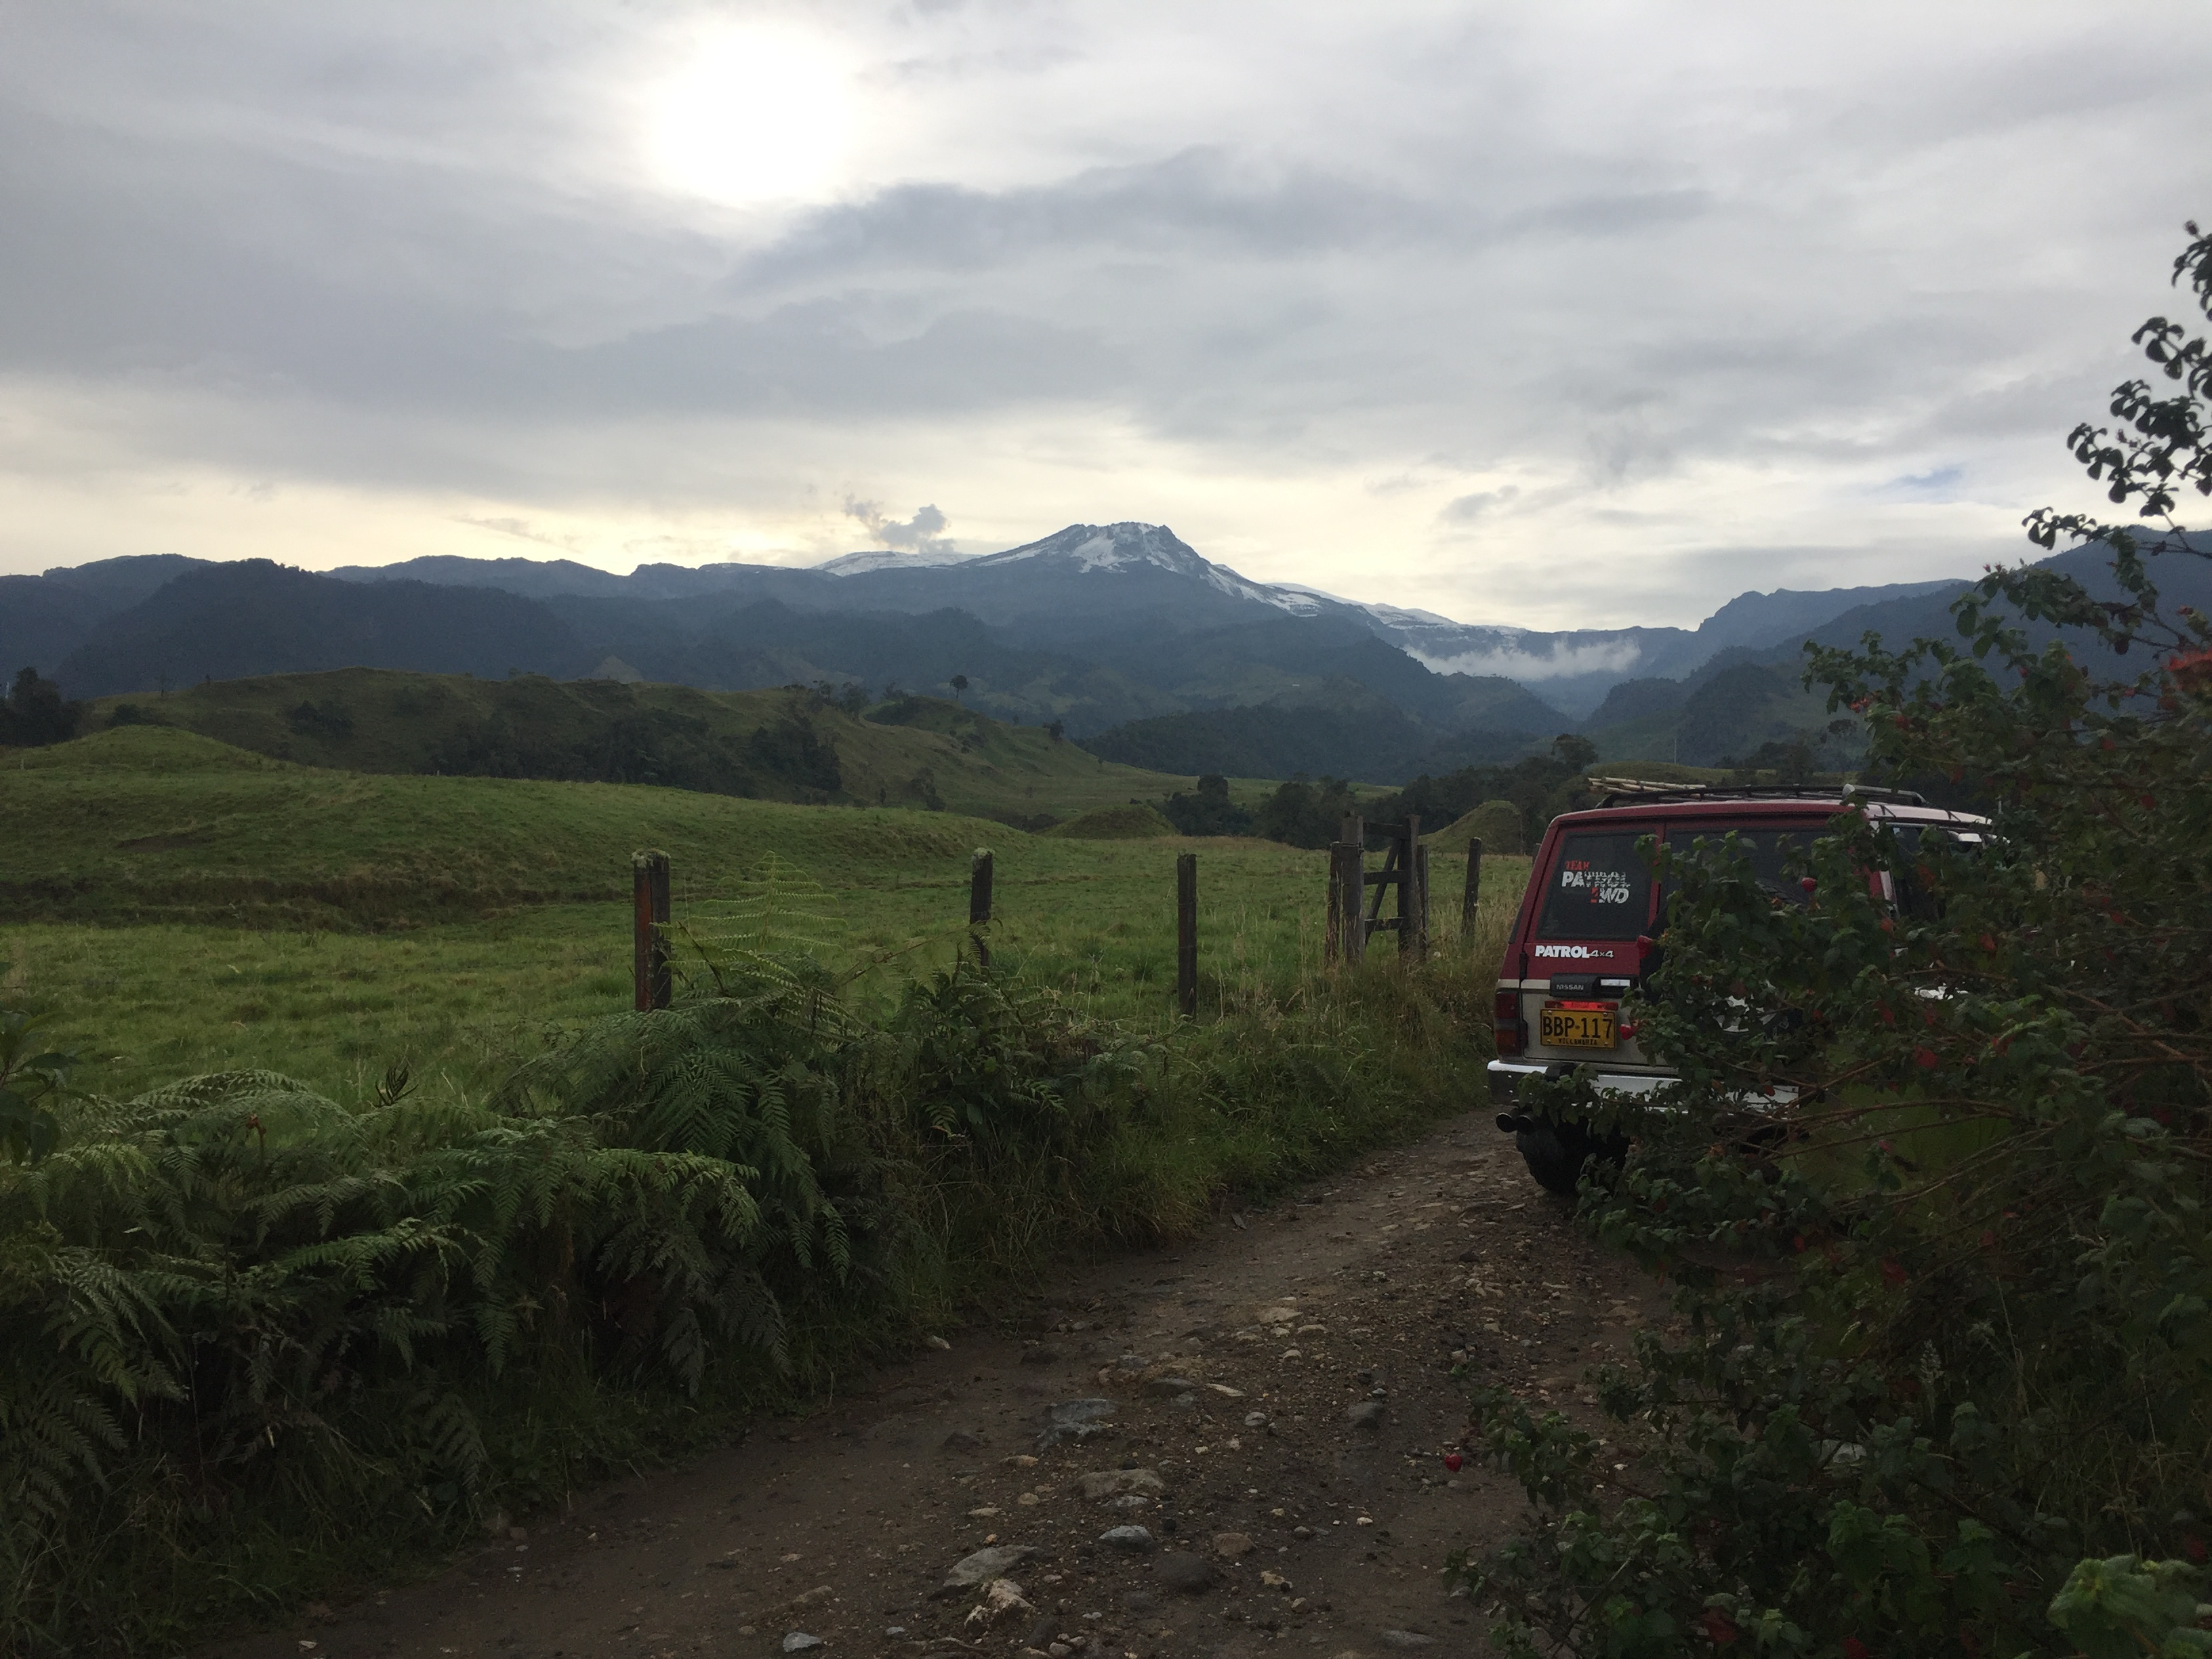 there are many green trees and gassy fields, slowly gaining elevation until it reaches a peak, capped with snow. A range rover is on a dirt road heading toward the mountain.